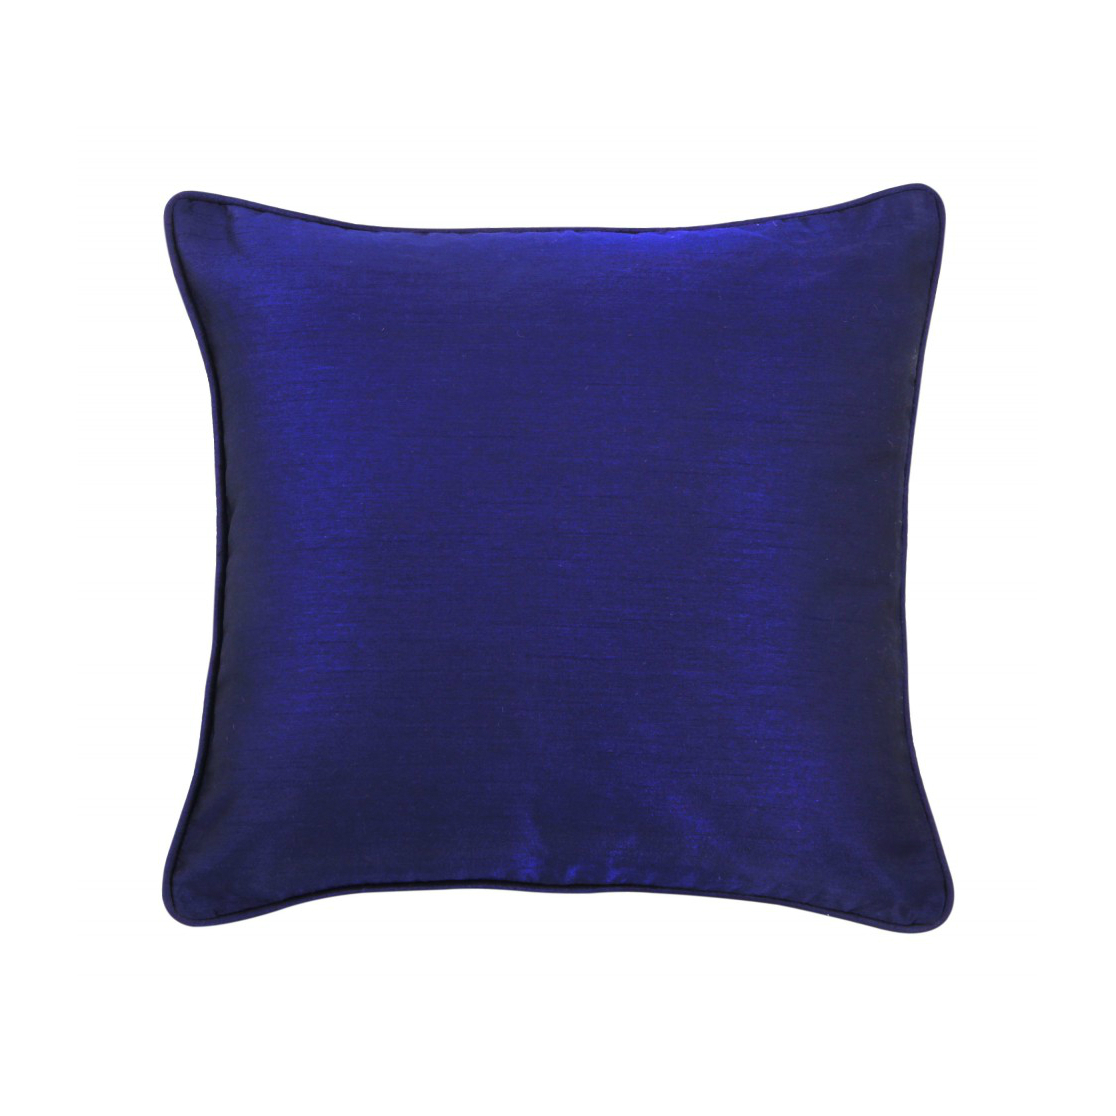 Polyrest Cushion - Standard